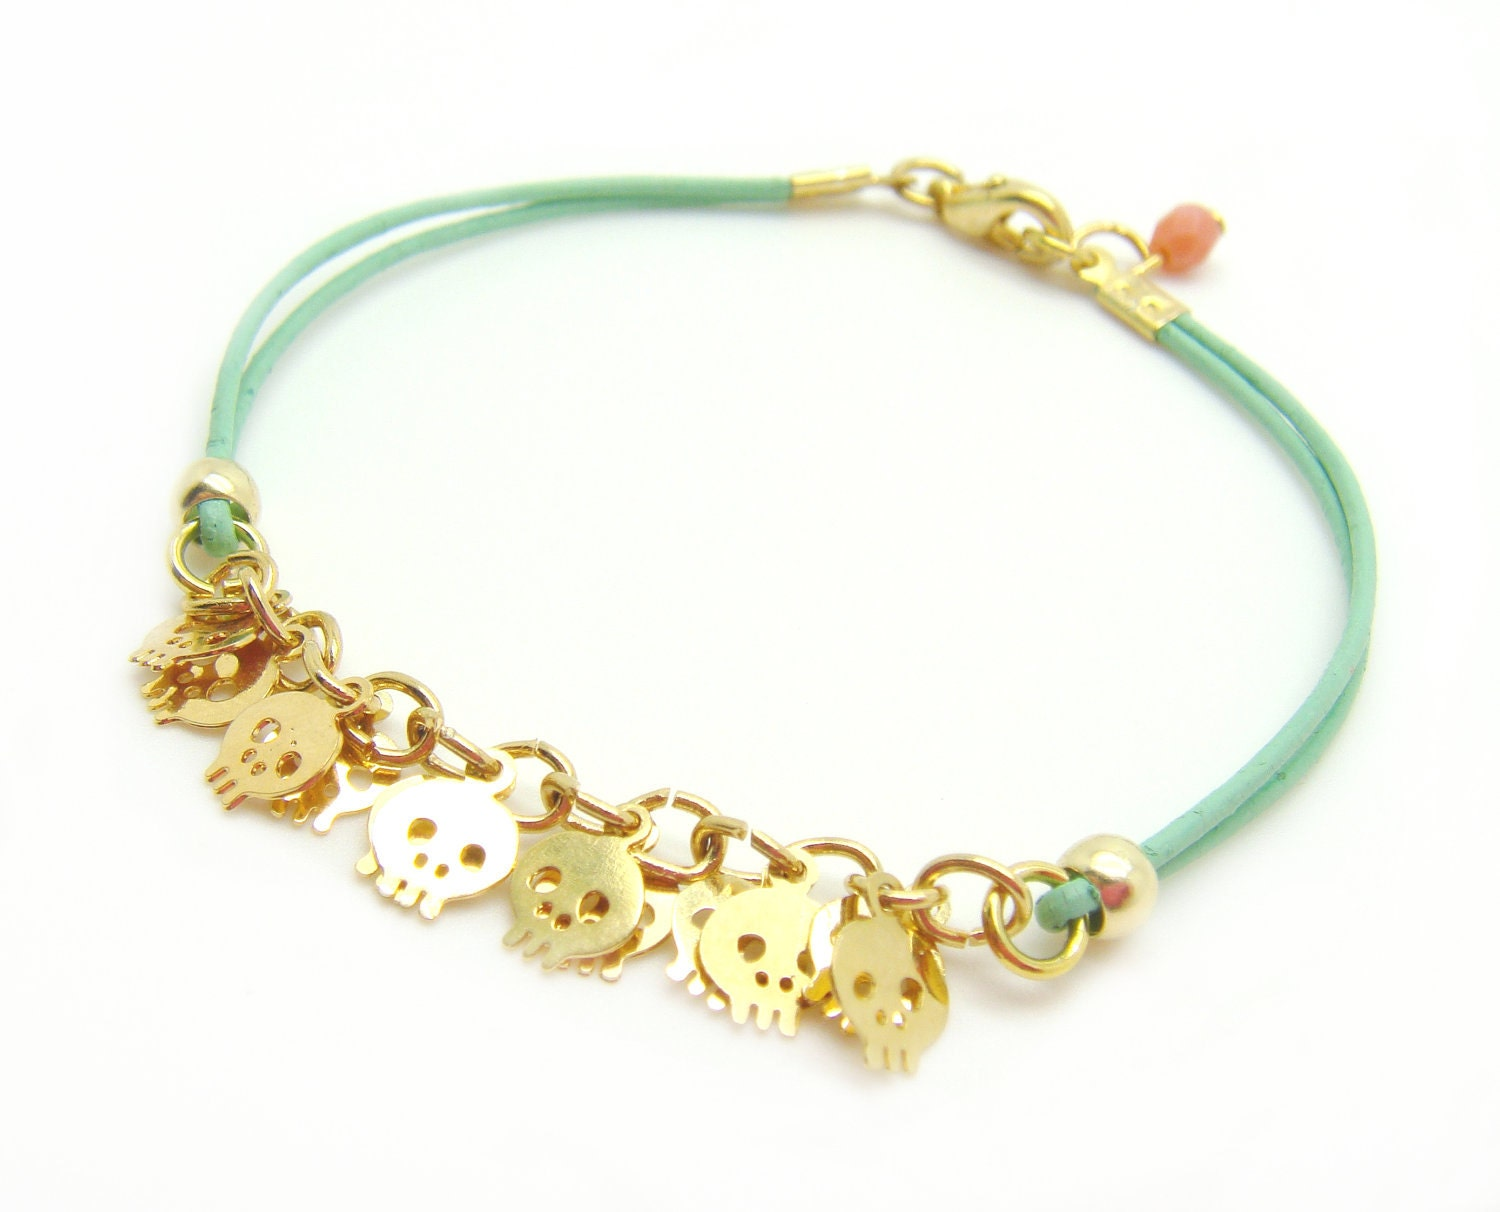 Tiny Skull Bracelet - Pastel Mint Leather W/ Tiny Gold Plated Skulls - Coral faceted pendant - minifabo